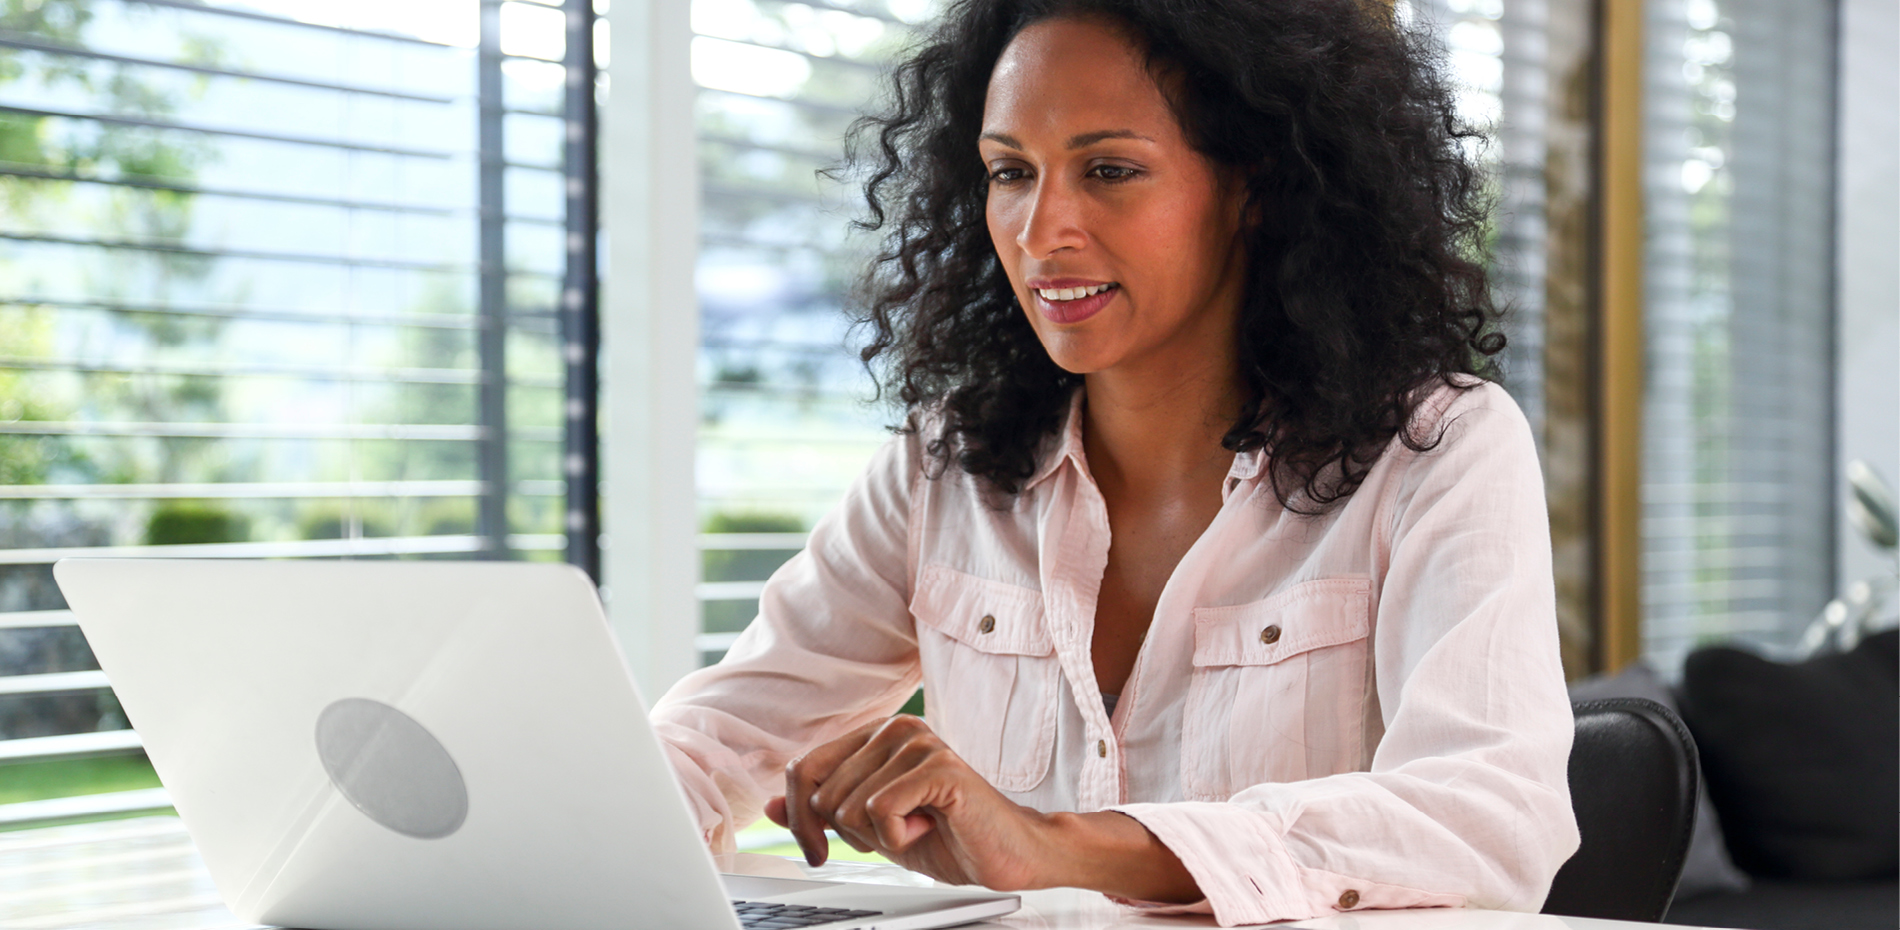 Female learner working on computer